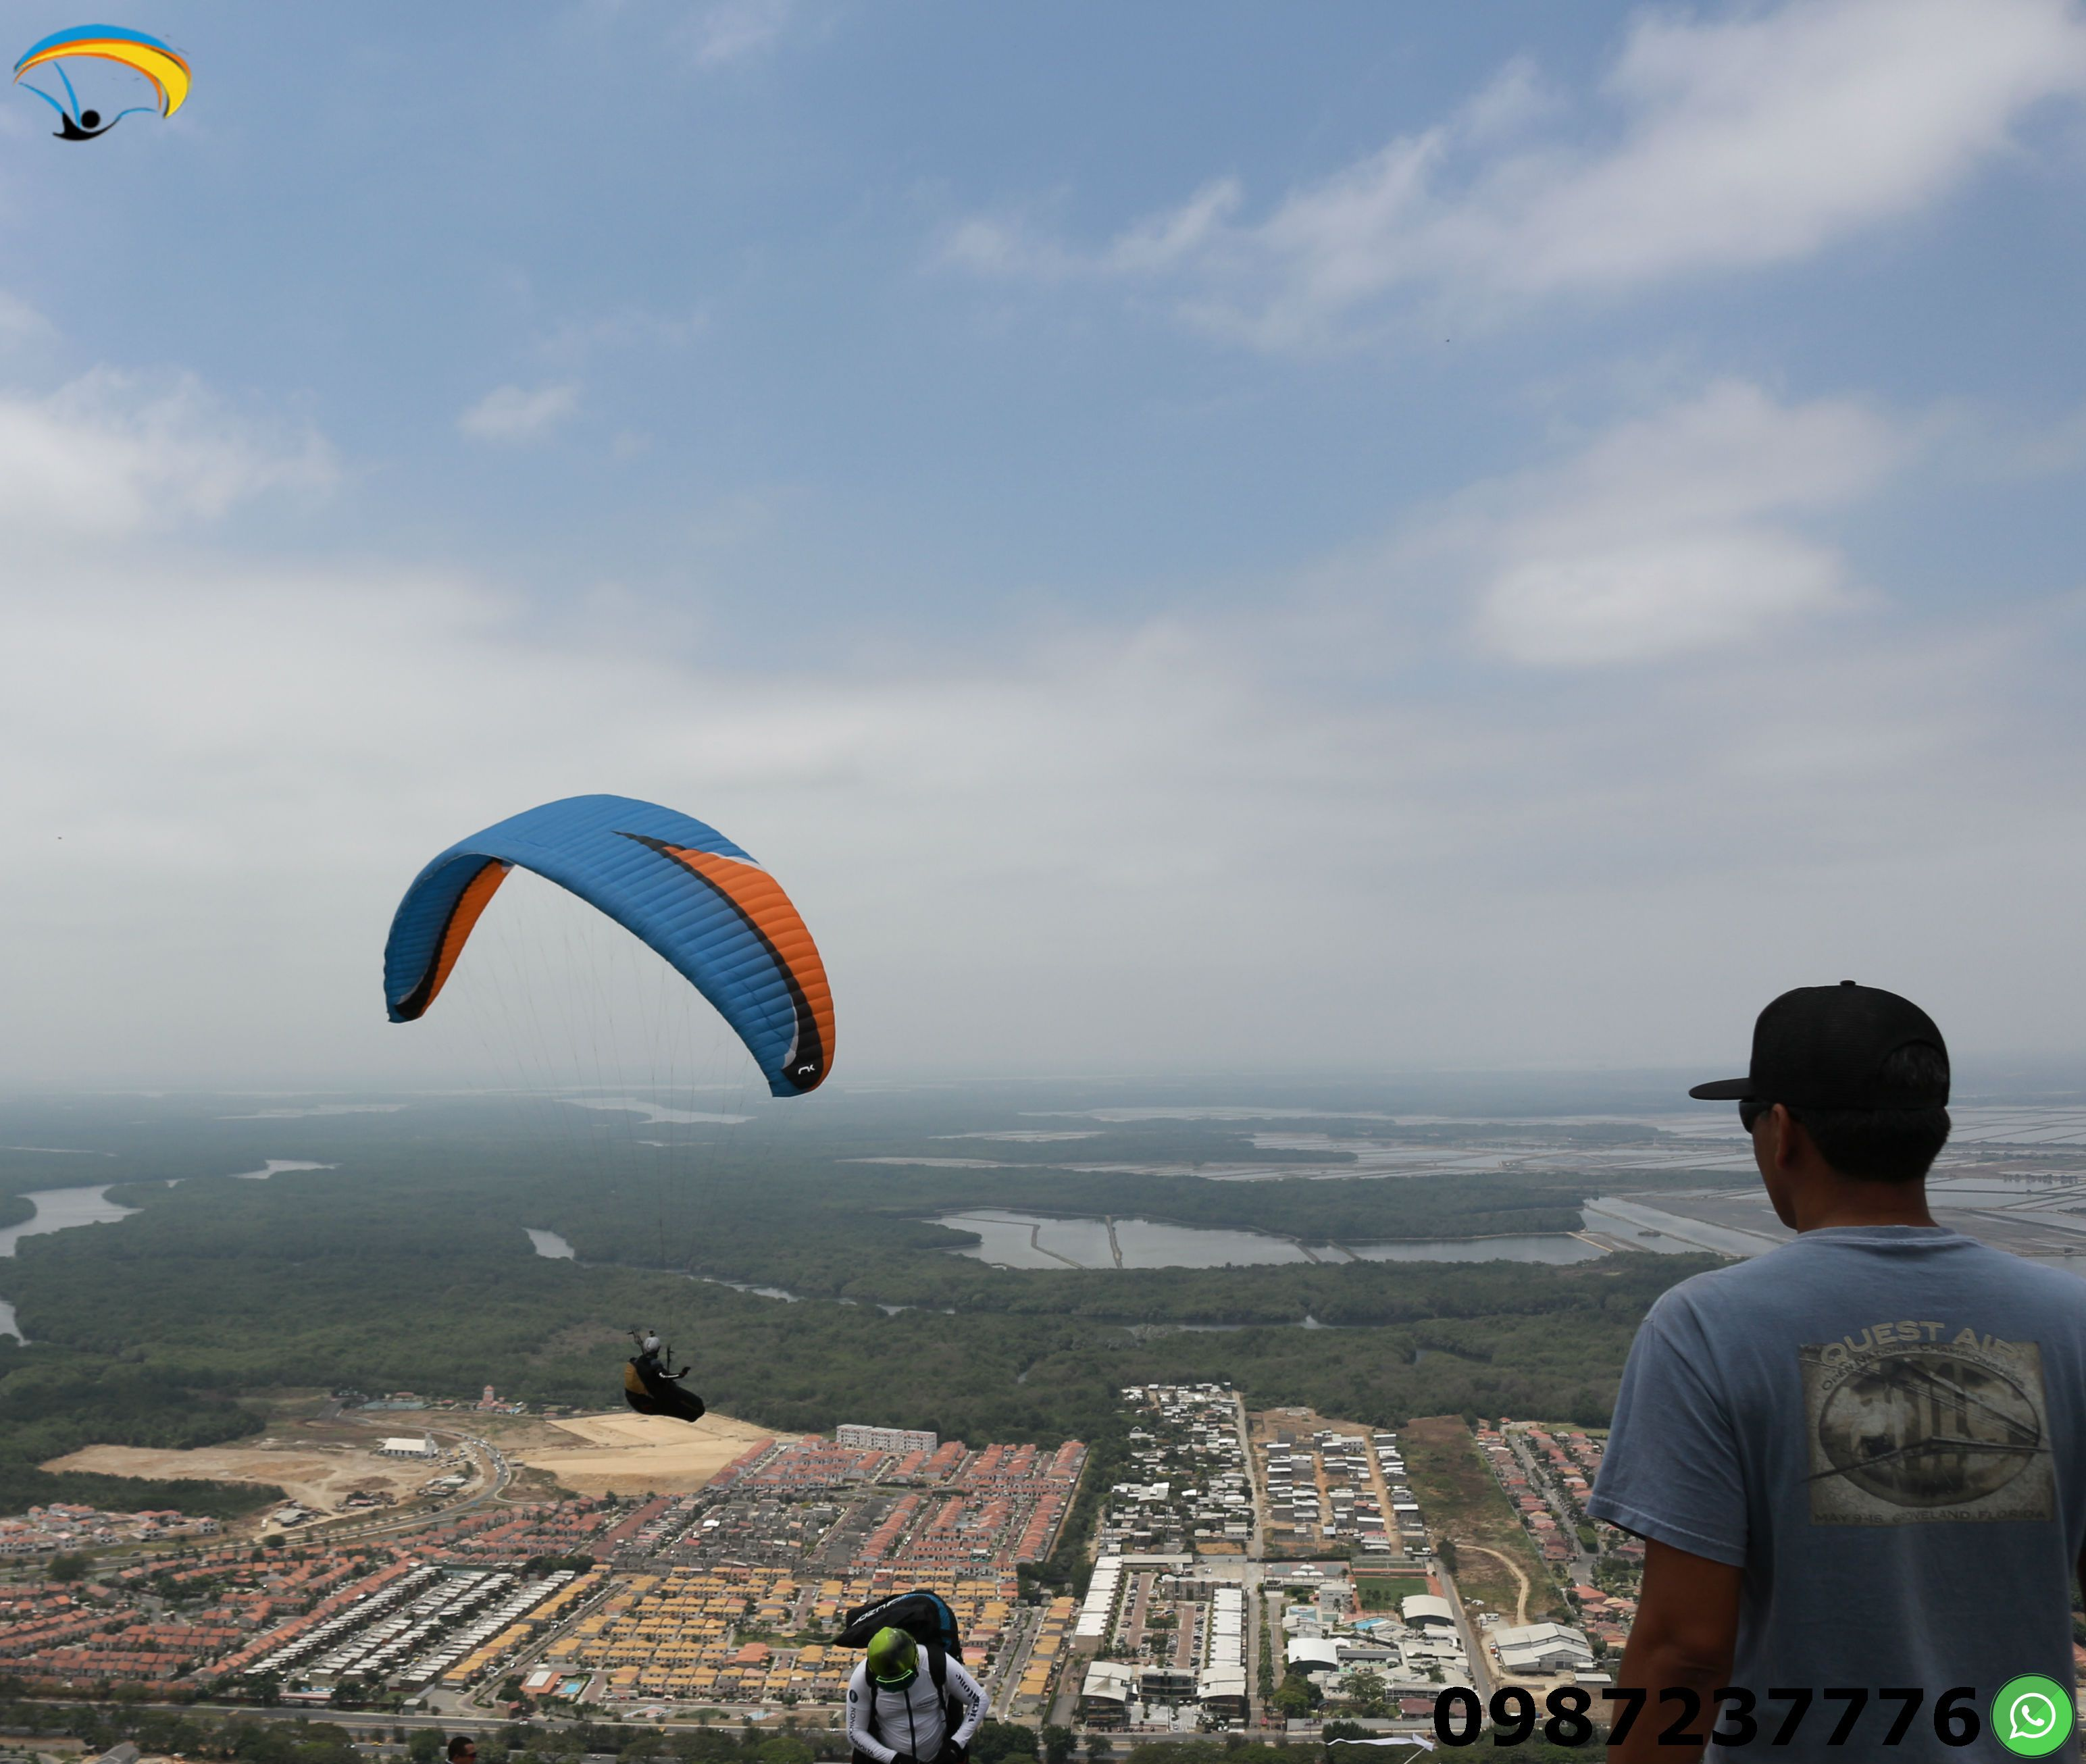 Paragliding Courses Guayaquil Ecuador You can learn this sport beginning with the first days after the theory and practice.